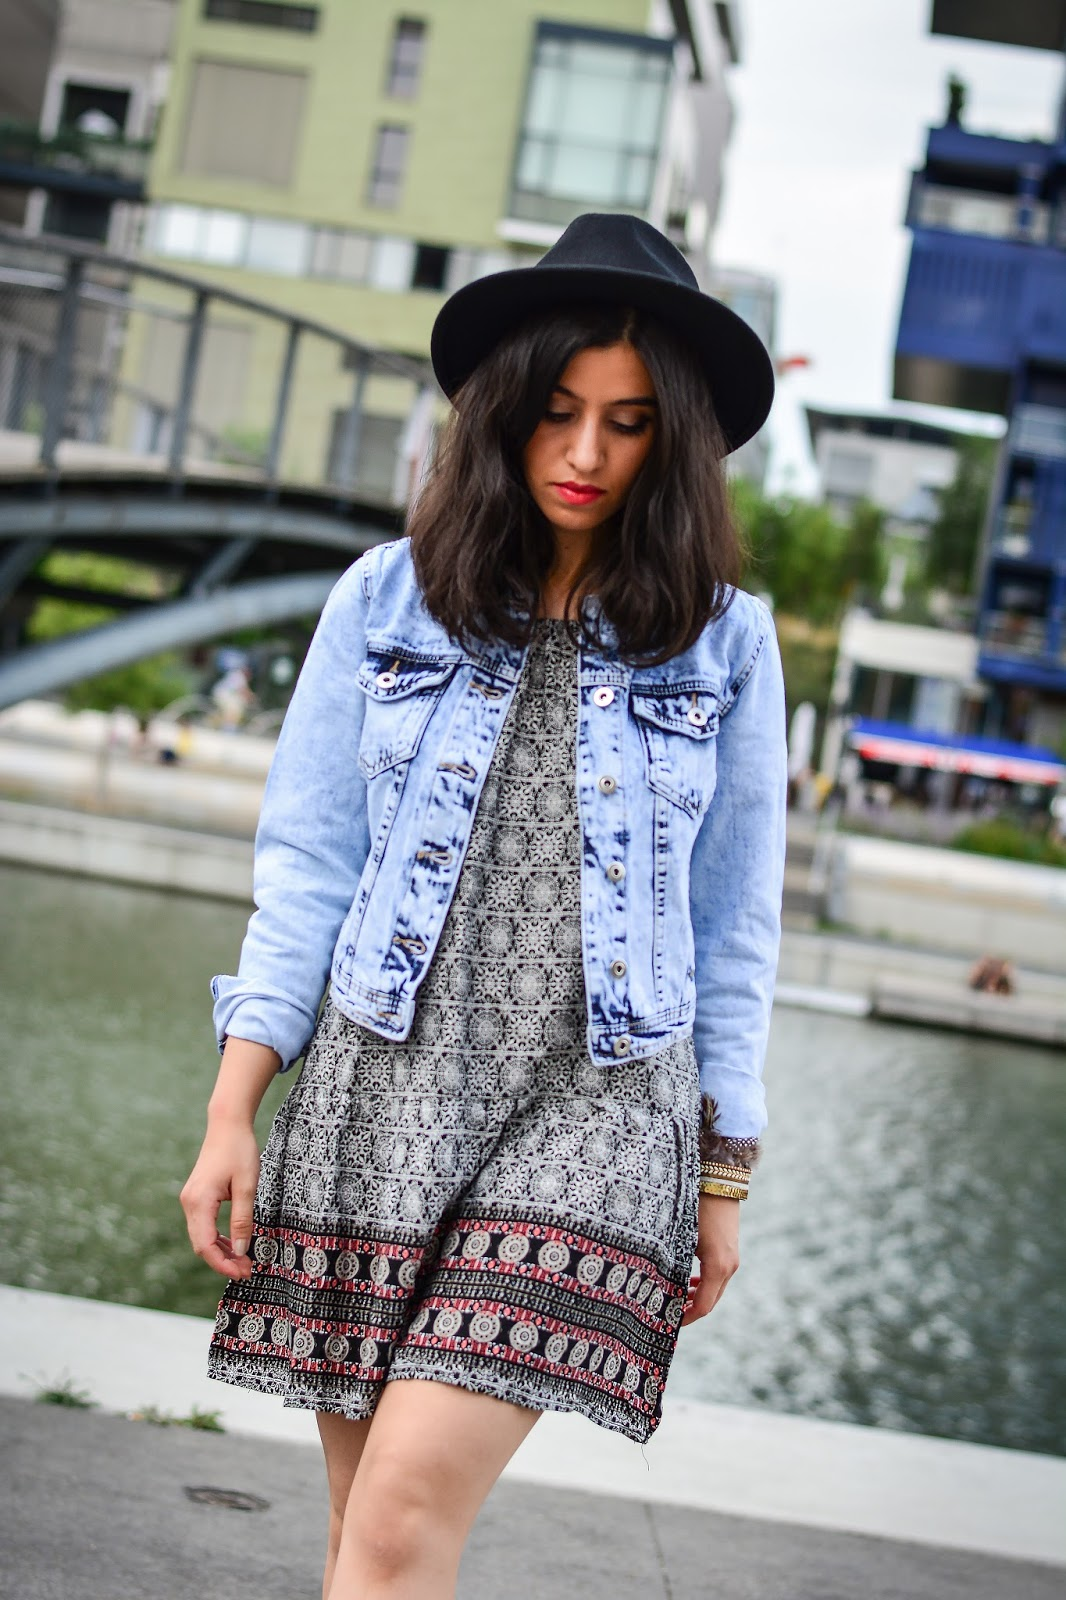 blog mode, blogueuse mode, my justfab style, just fab, just fab blogueuse, mode, french blogger, bohème chic, festivalière, blogueuse, amenidaily